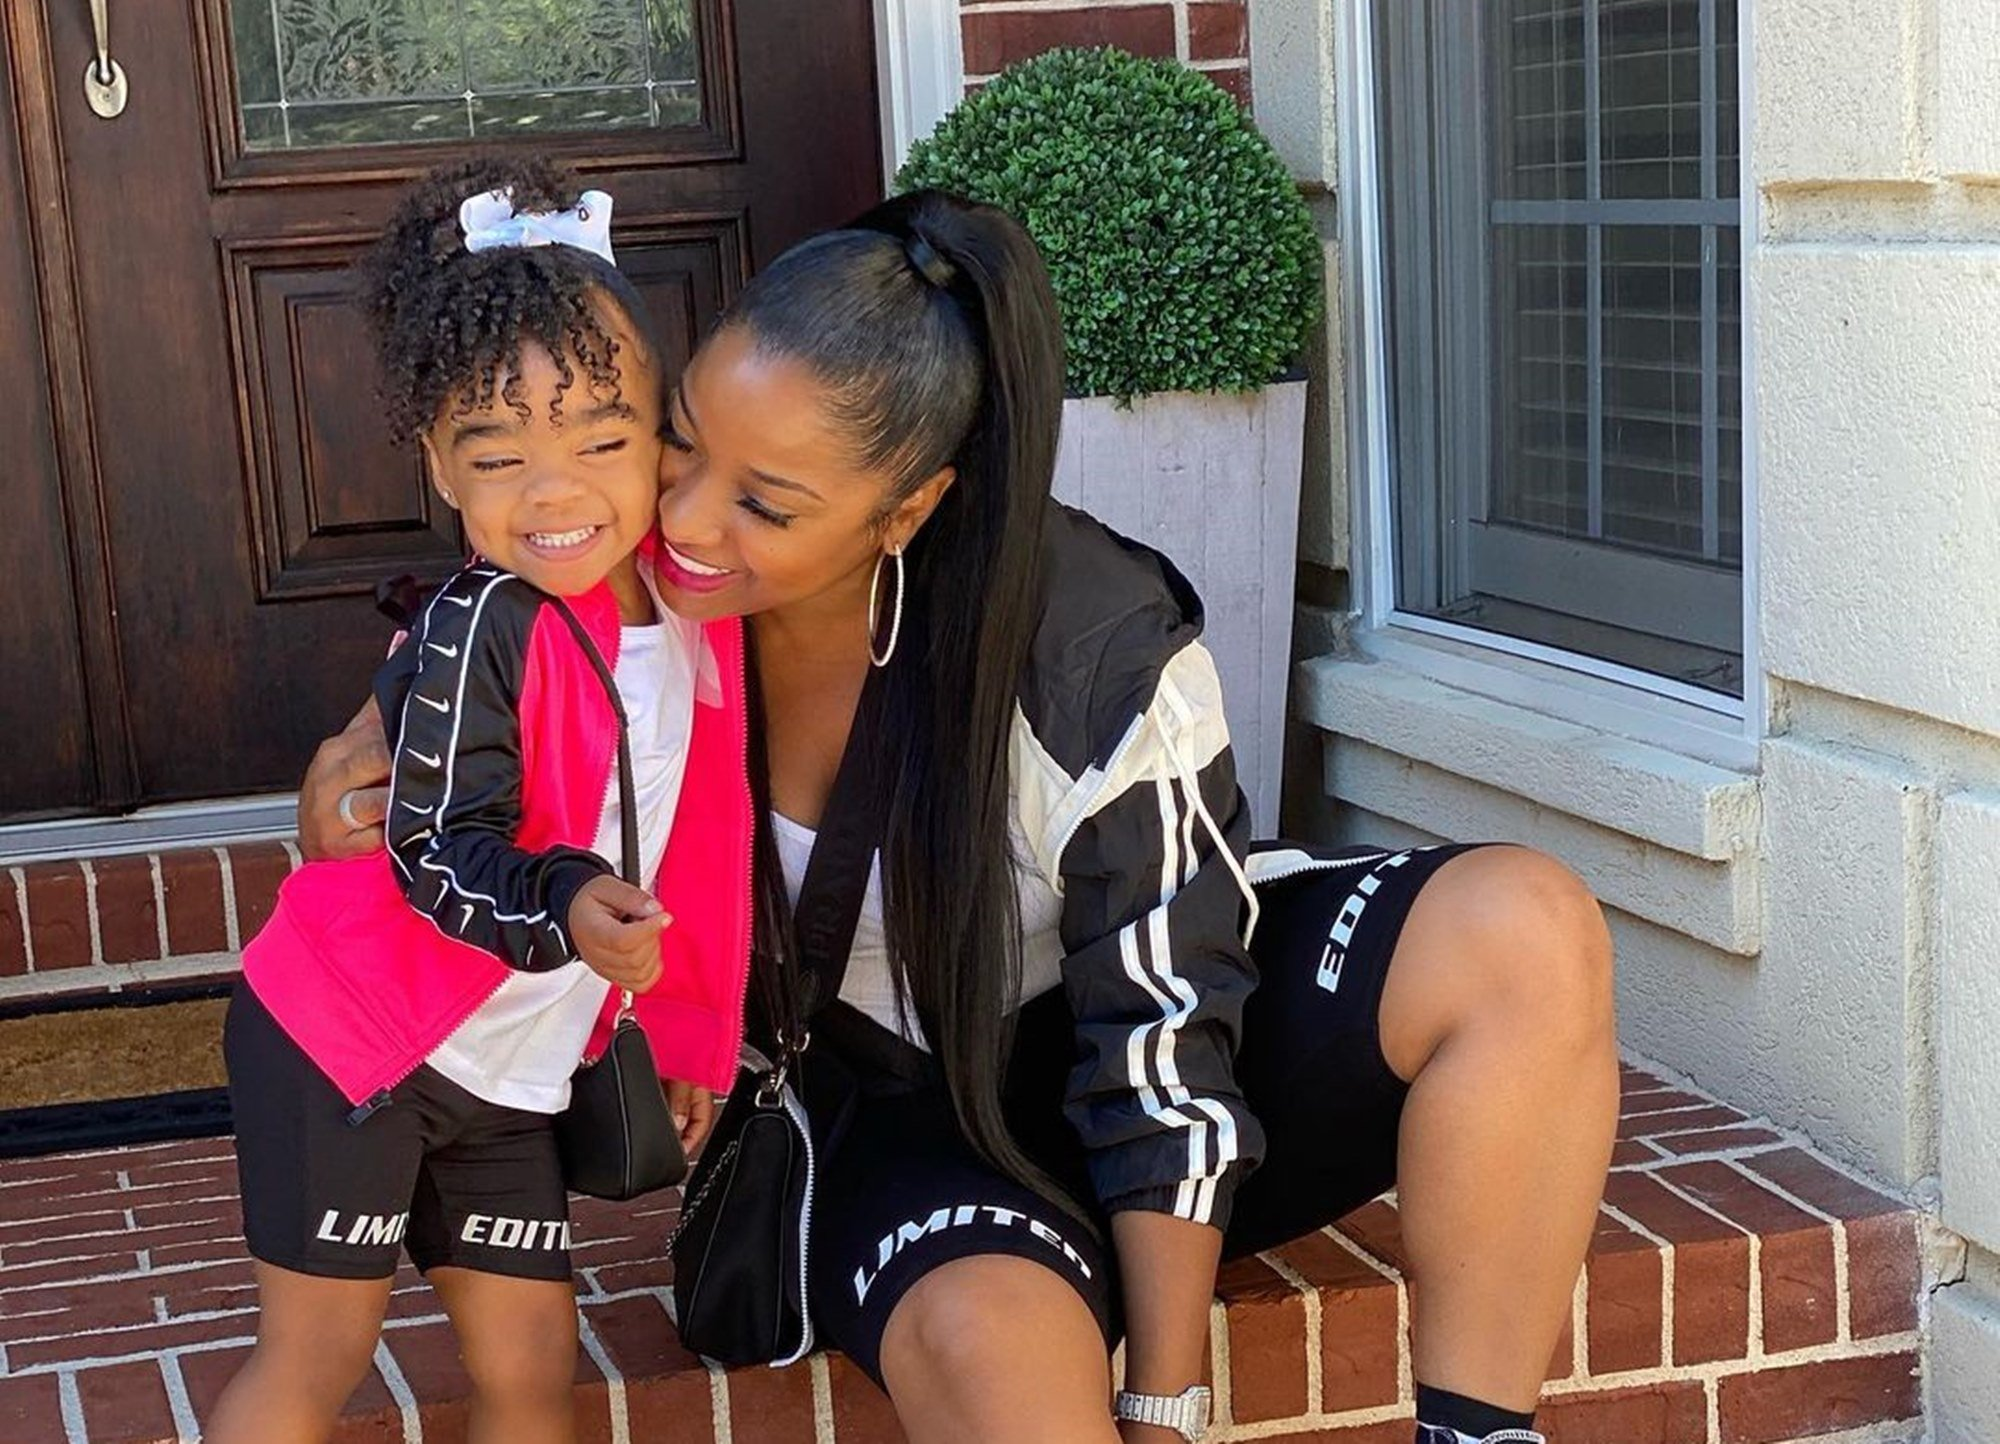 Toya Johnson Posts Cute Photos With Daughter Reign Rushing — Fans Defend Duo After Critics Slammed Child's Looks